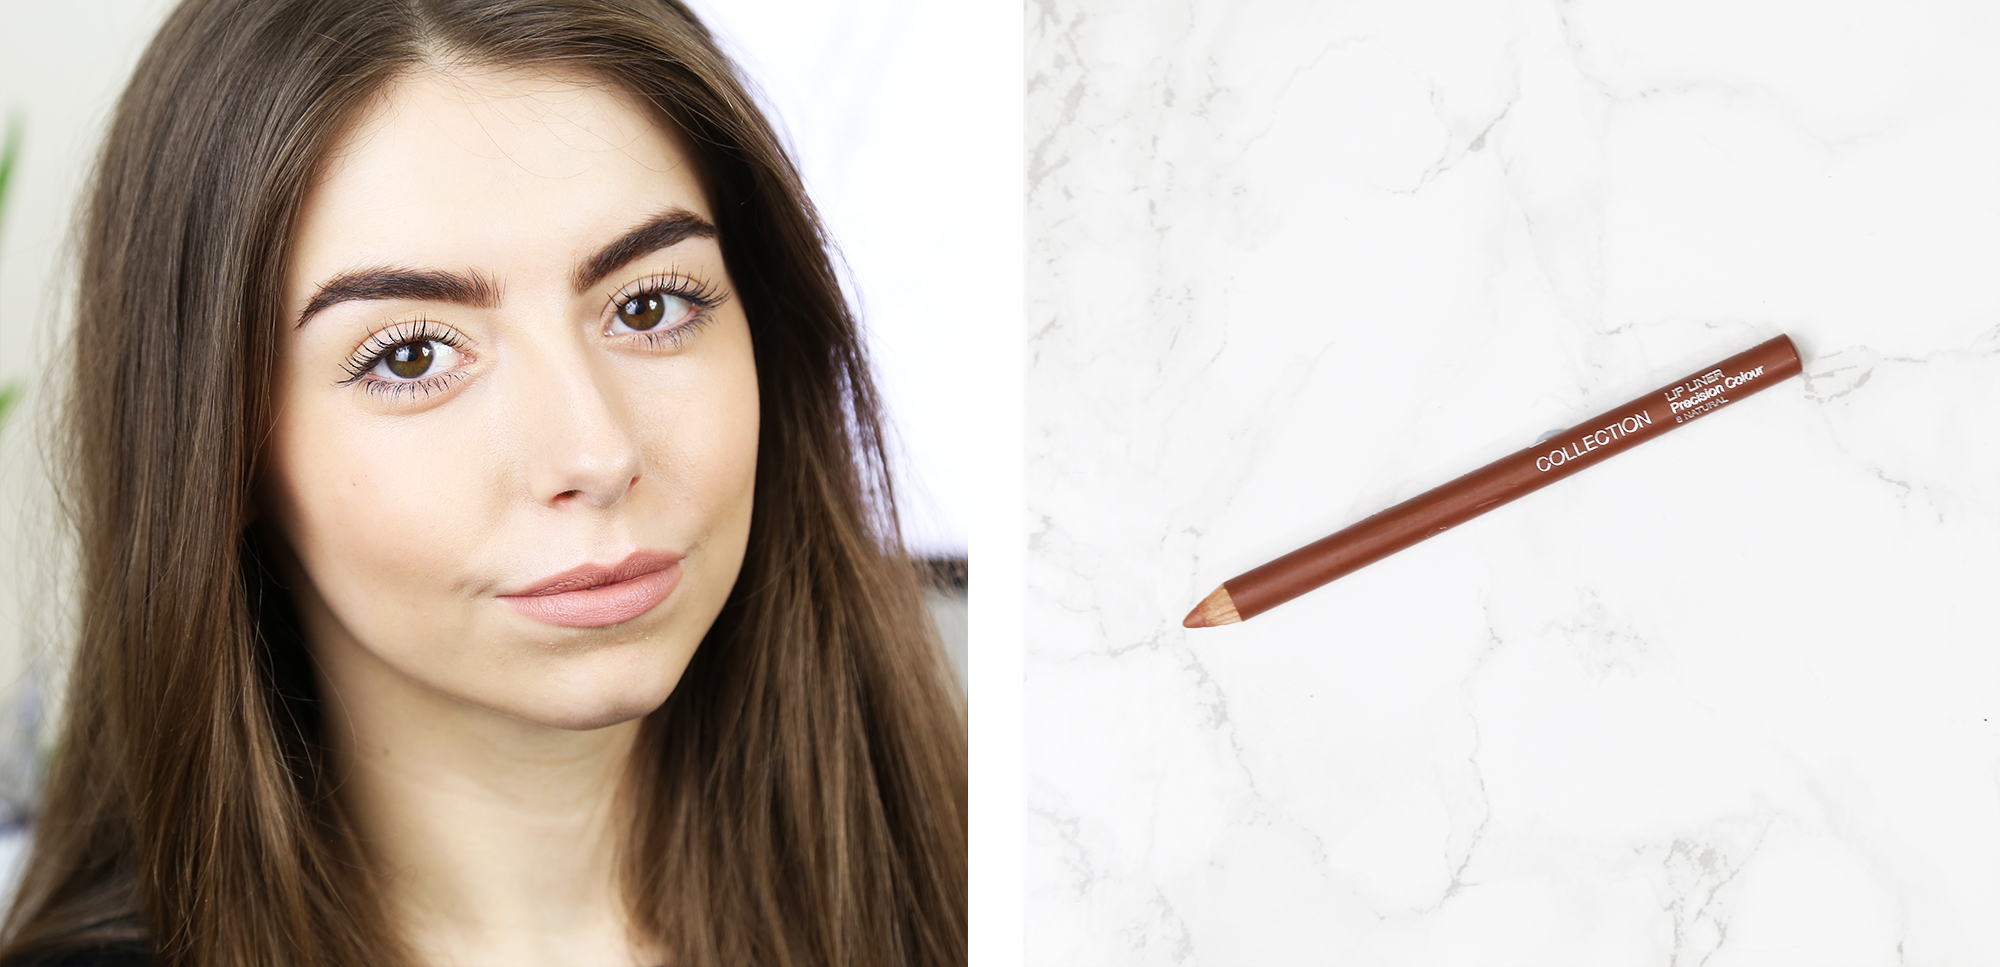 Cocochic+Kylie+Jenner+Nude+Lipstick+Swatches+Collection